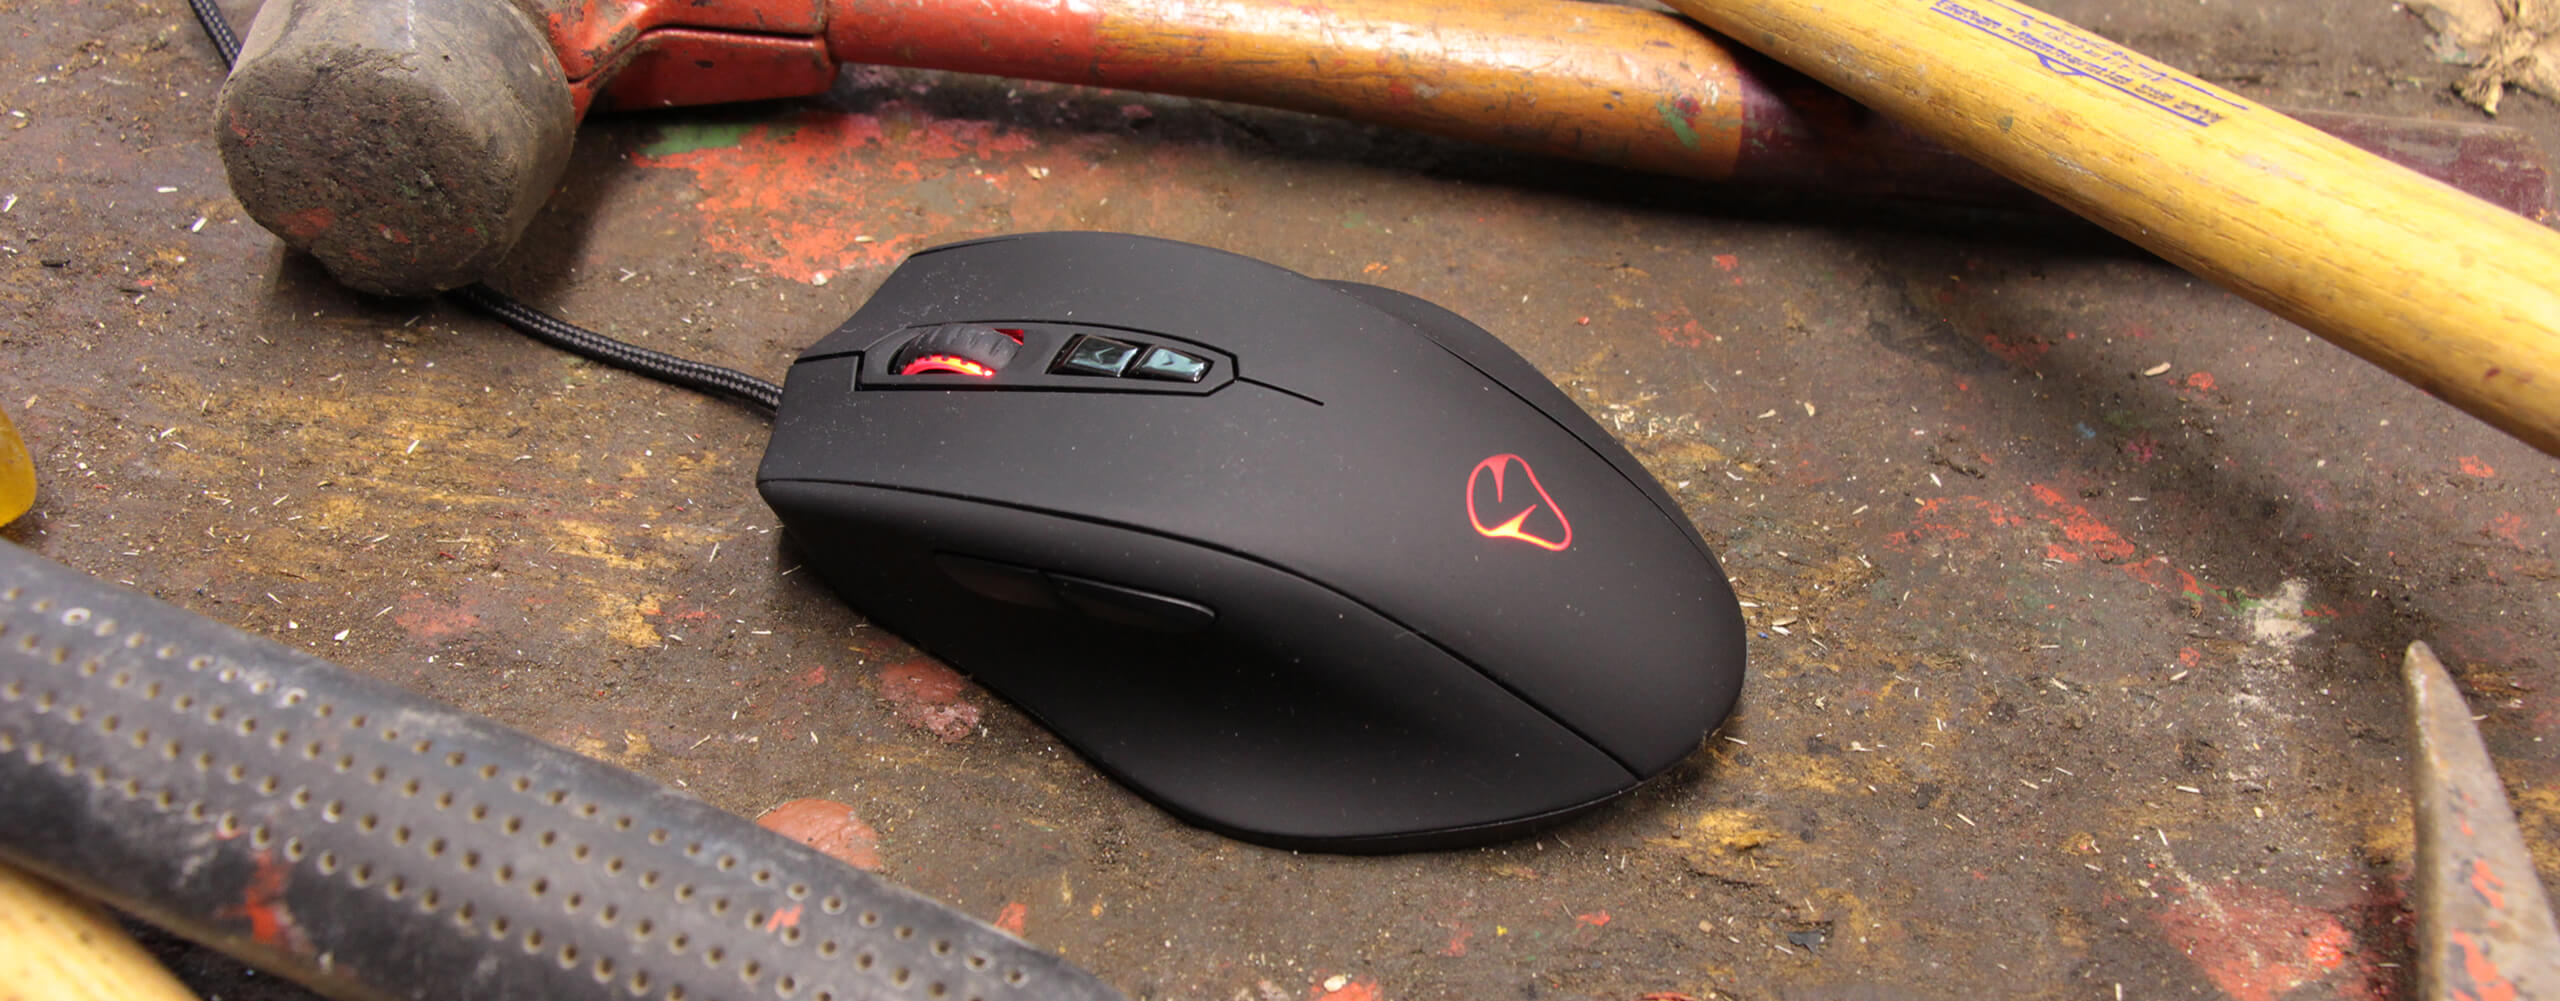 Mionix CASTOR Test - Outdoor